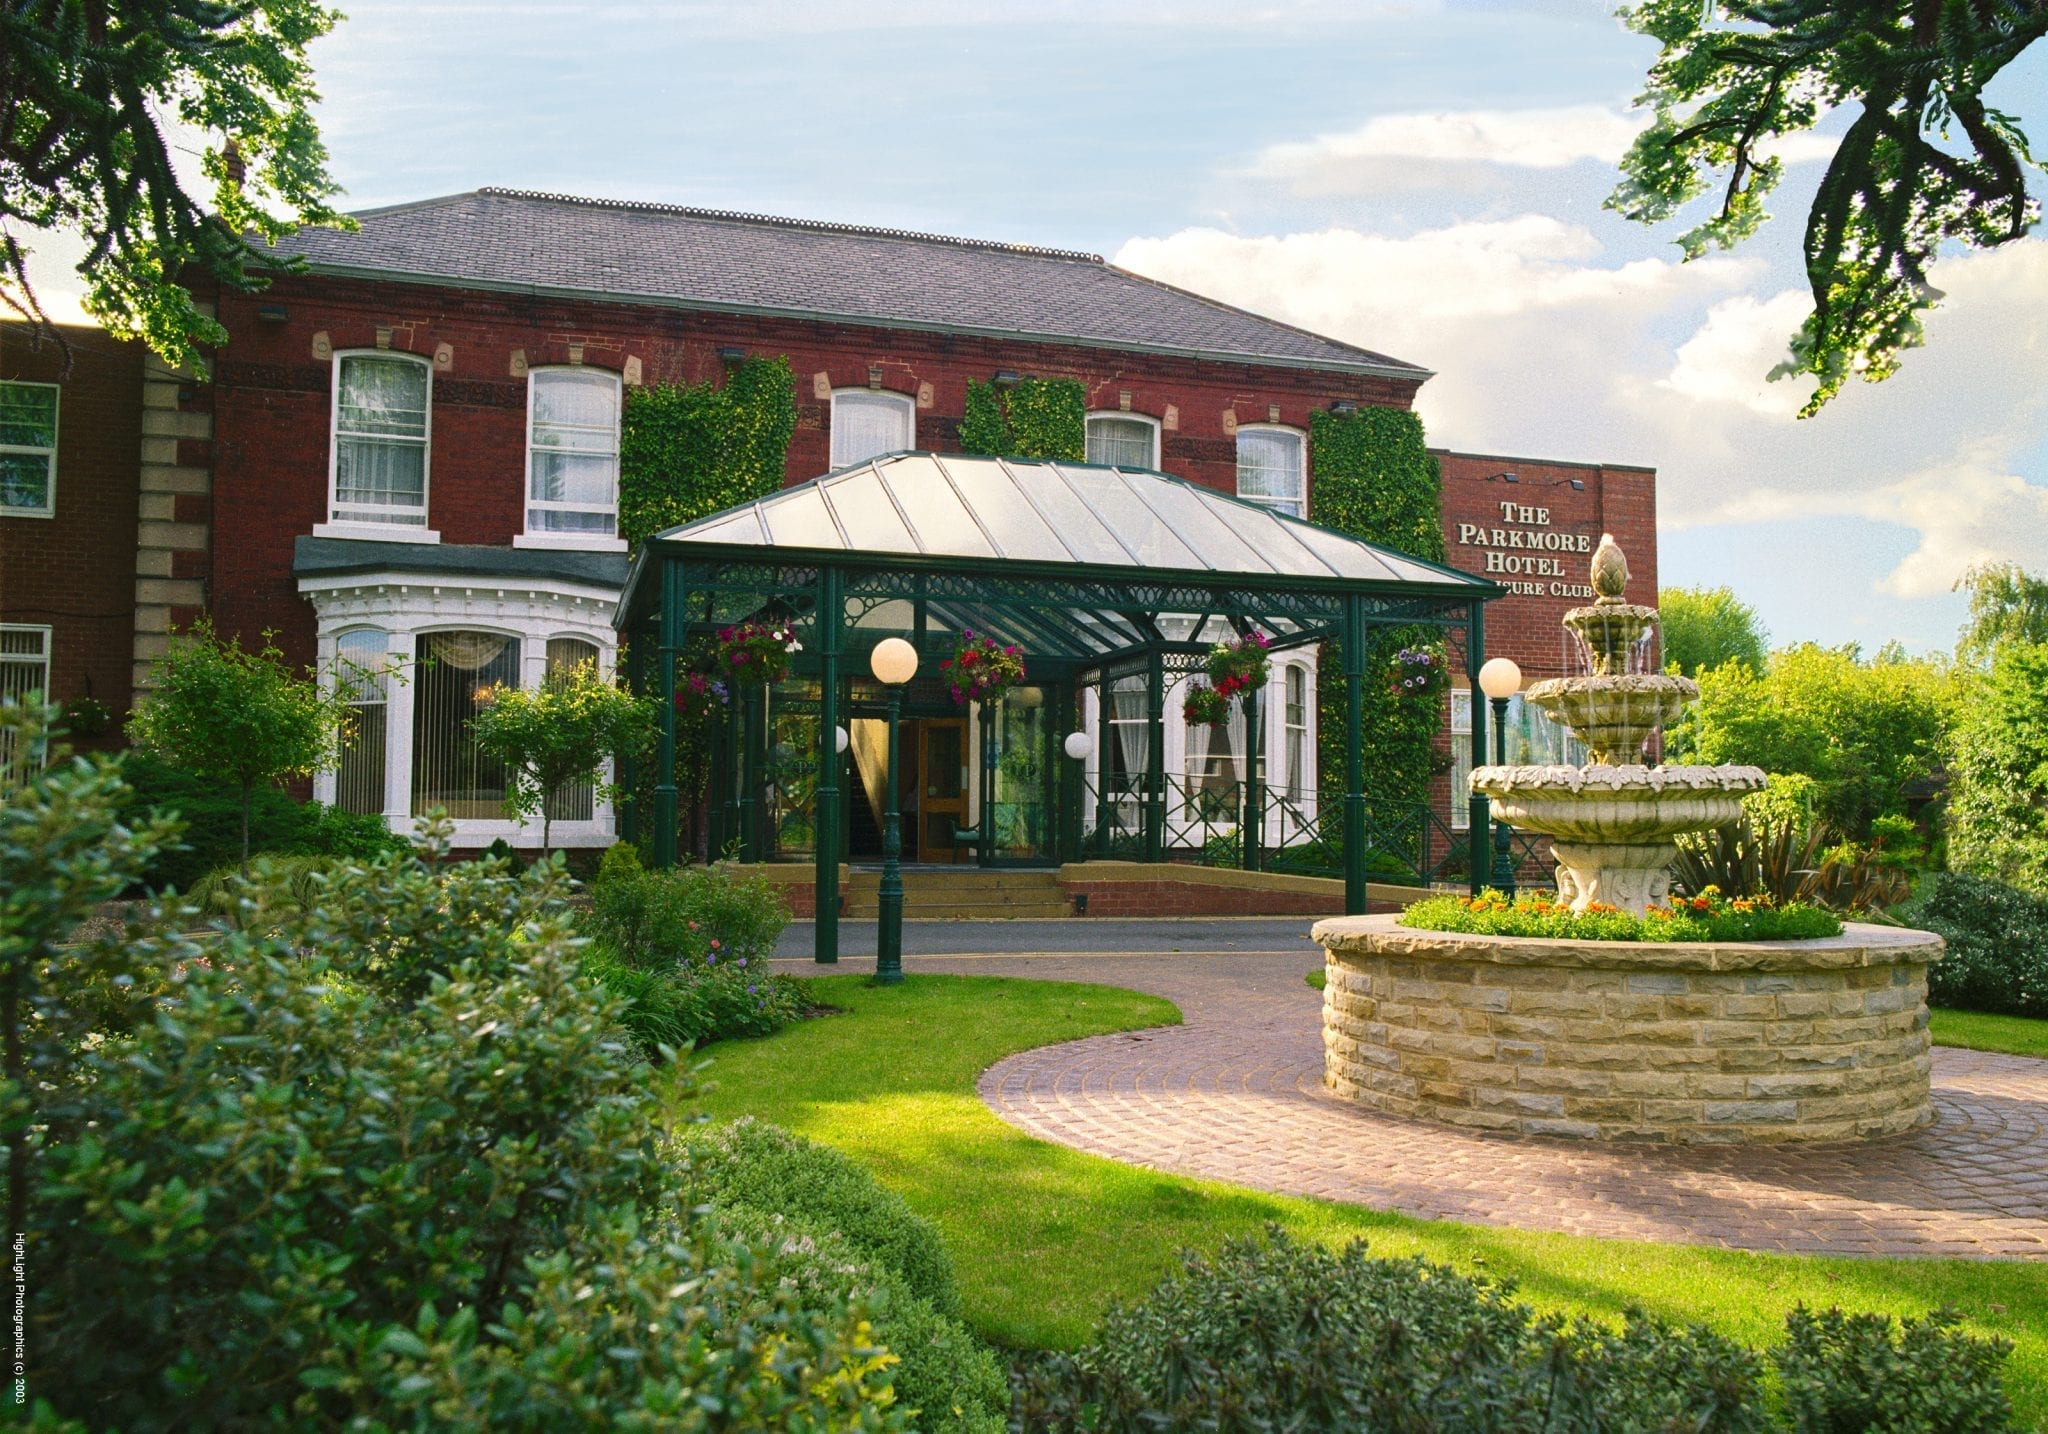 The Parkmore Hotel